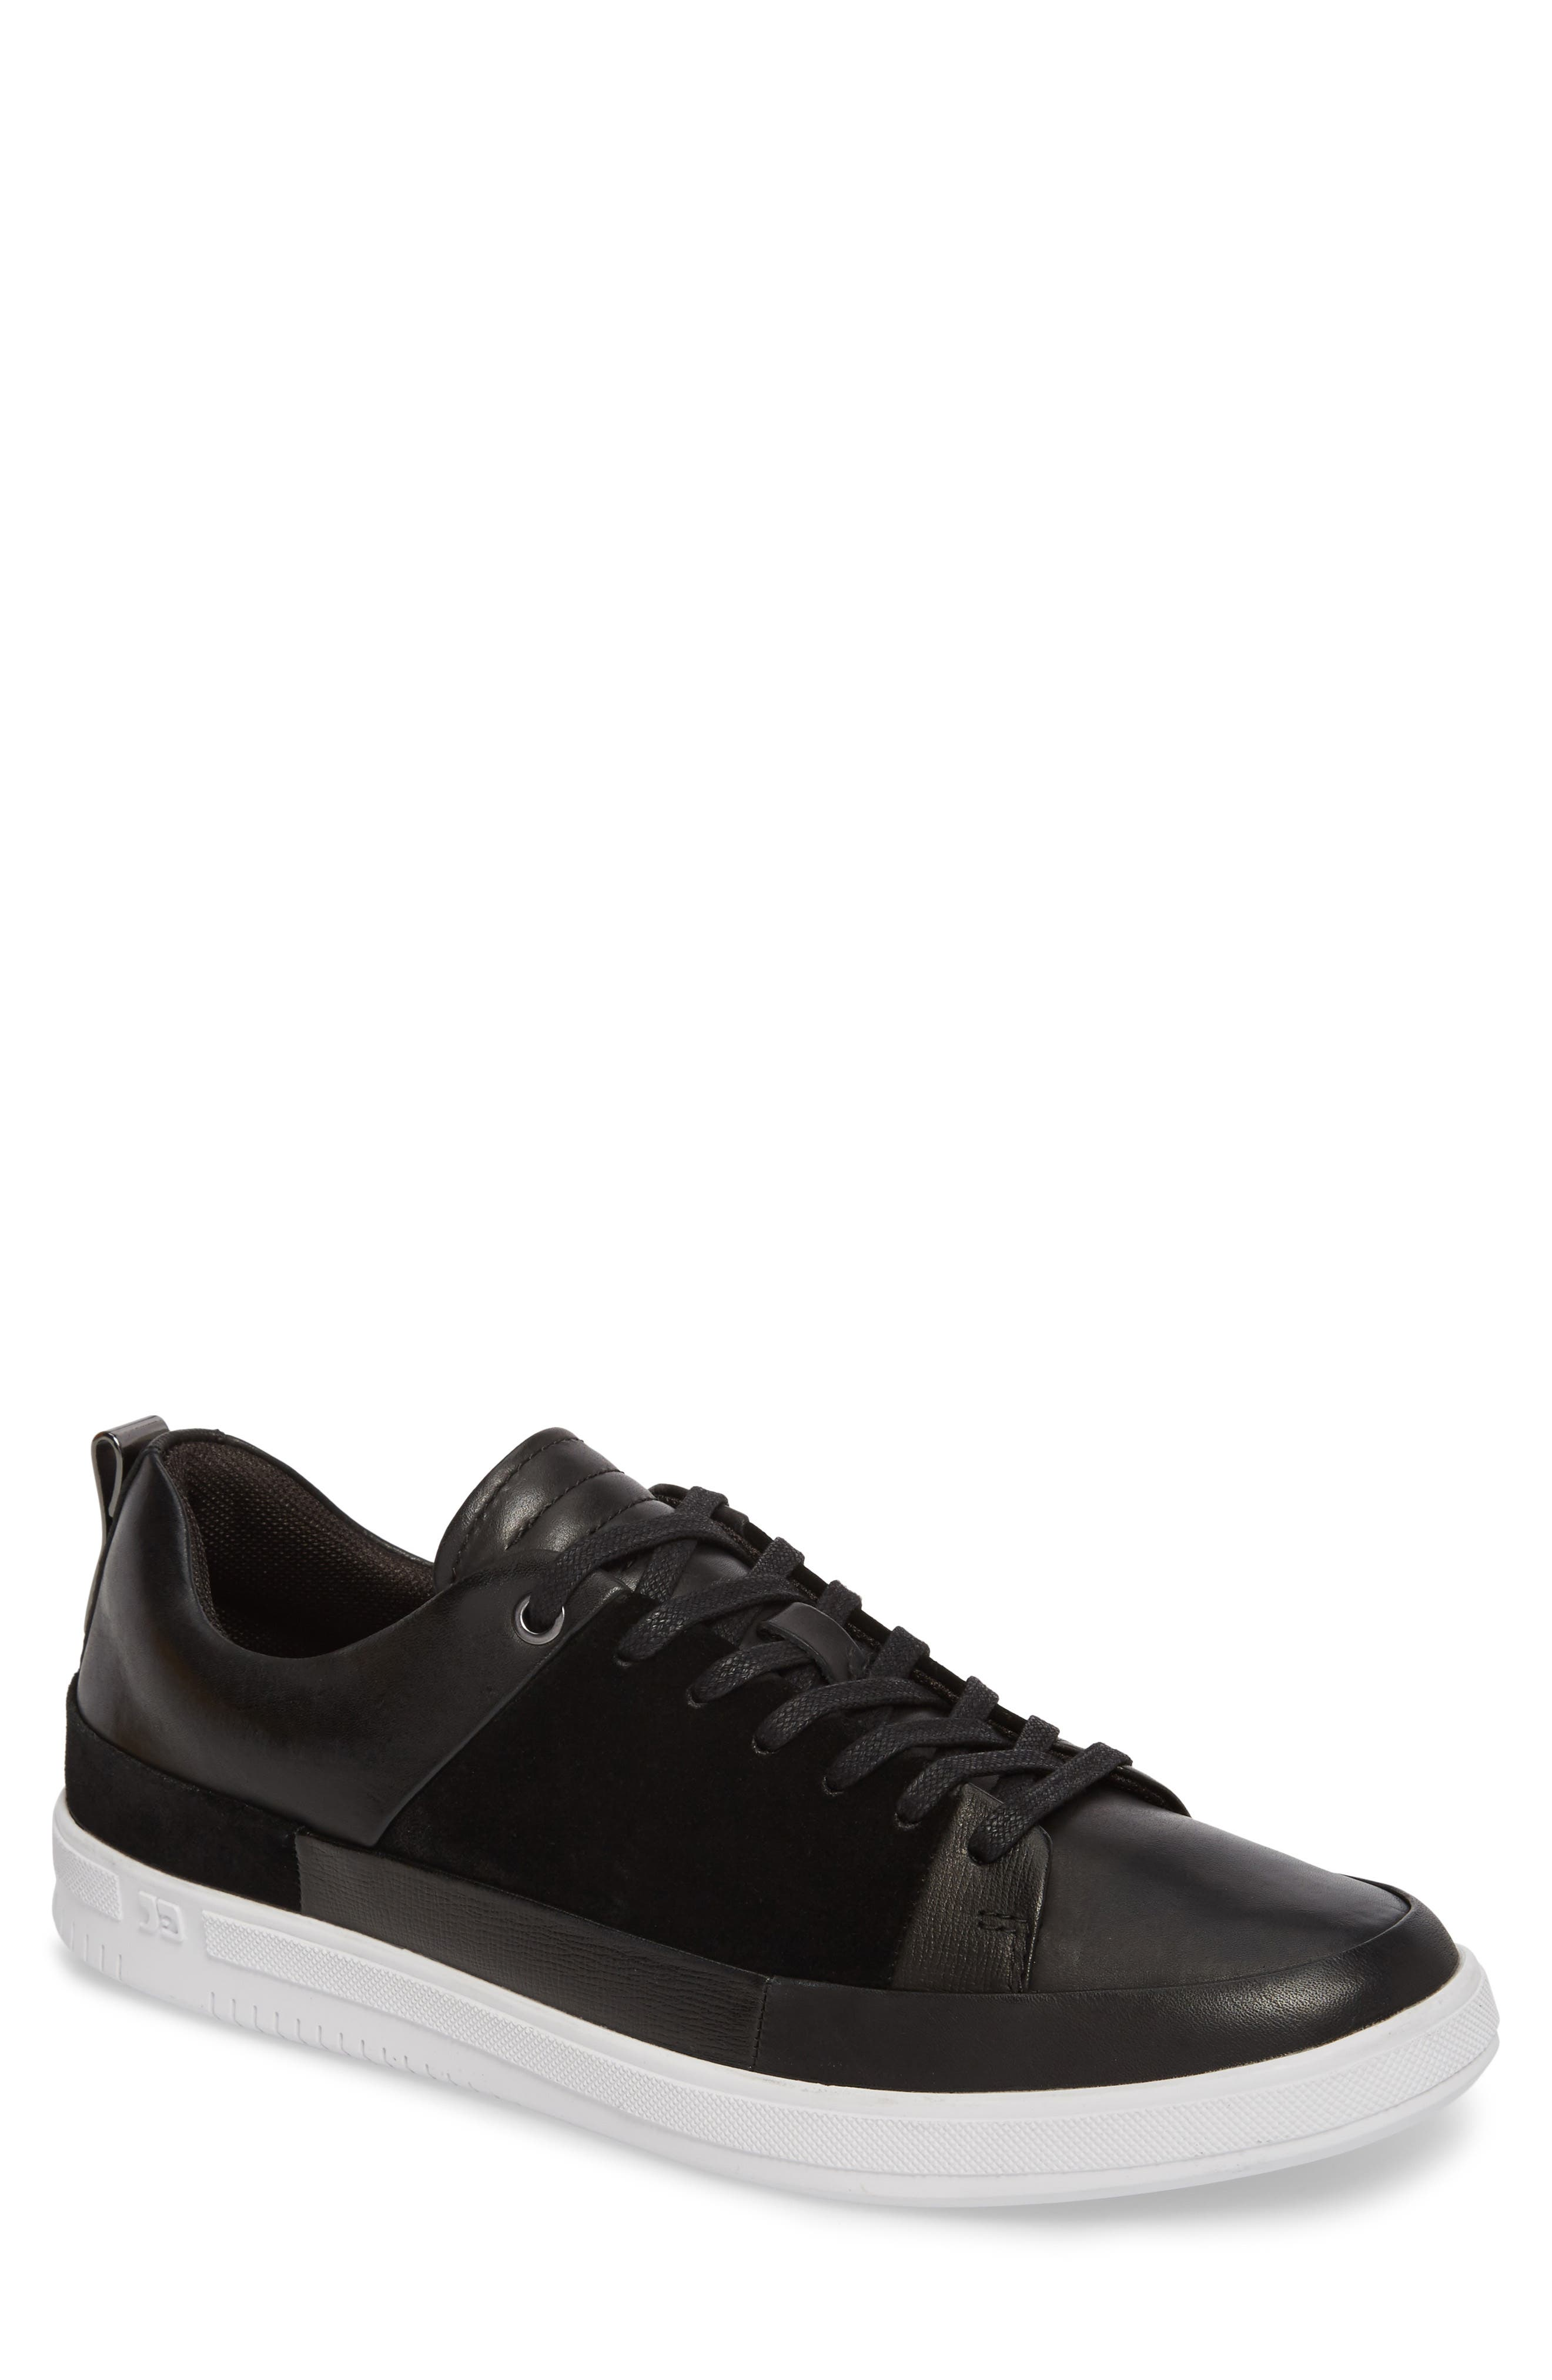 Slick Sneaker,                         Main,                         color, BLACK LEATHER/ SUEDE